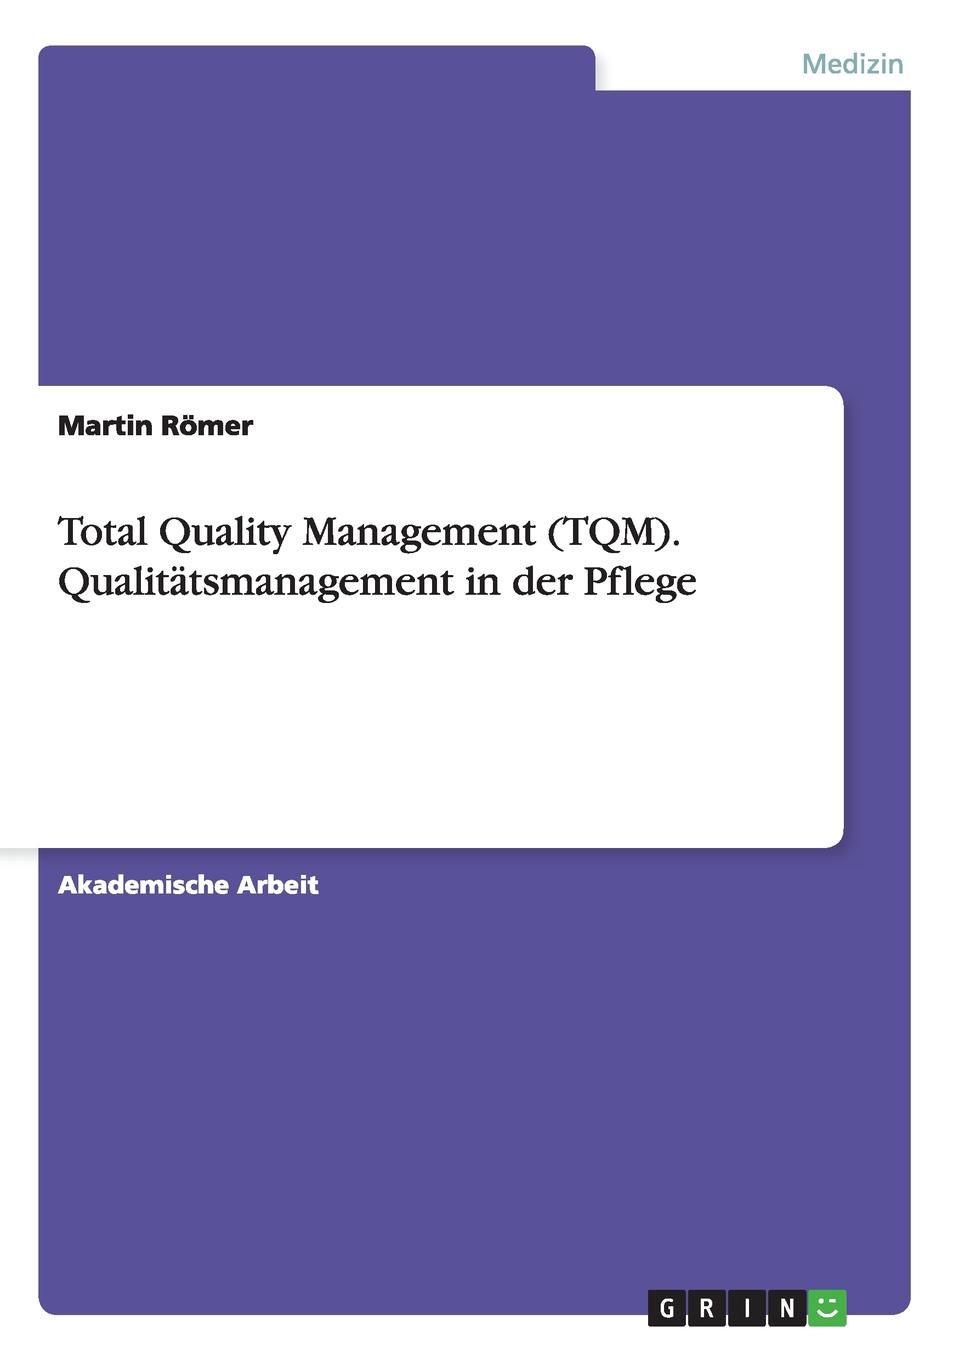 Martin Romer Total Quality Management (TQM). Qualitatsmanagement in Der Pflege abadal salam t hussain measurement techniques of total quality management tqm